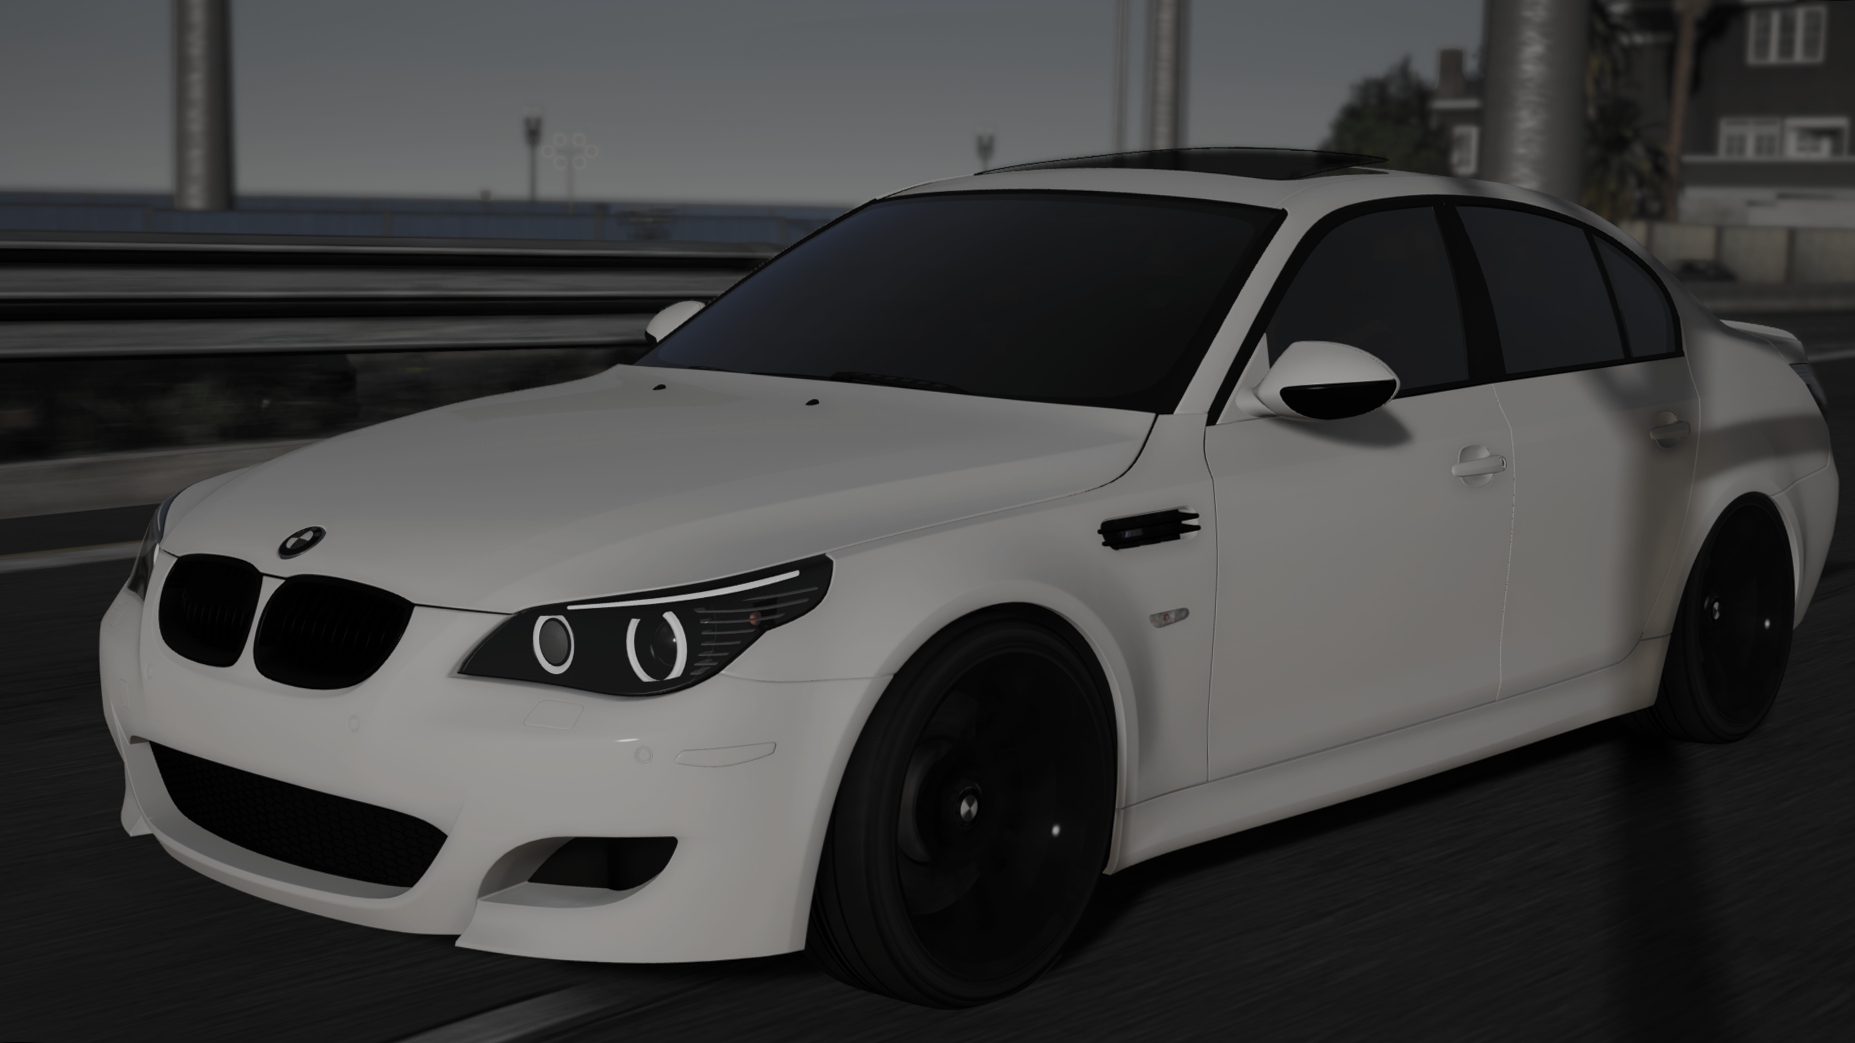 bmw e60 m5 add on tuning liveries gta5. Black Bedroom Furniture Sets. Home Design Ideas